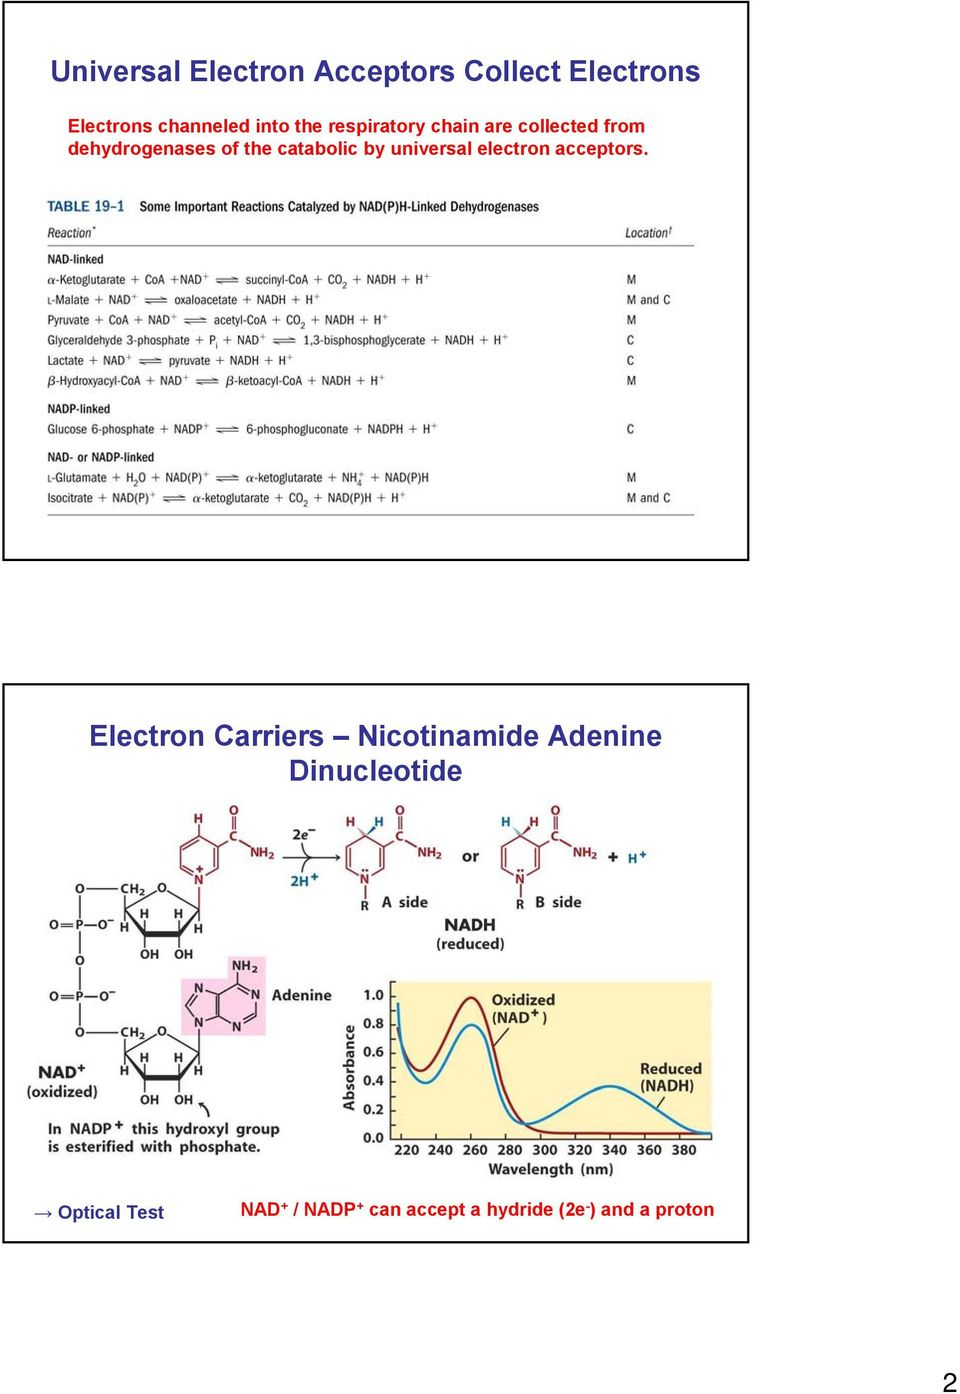 universal electron acceptors.